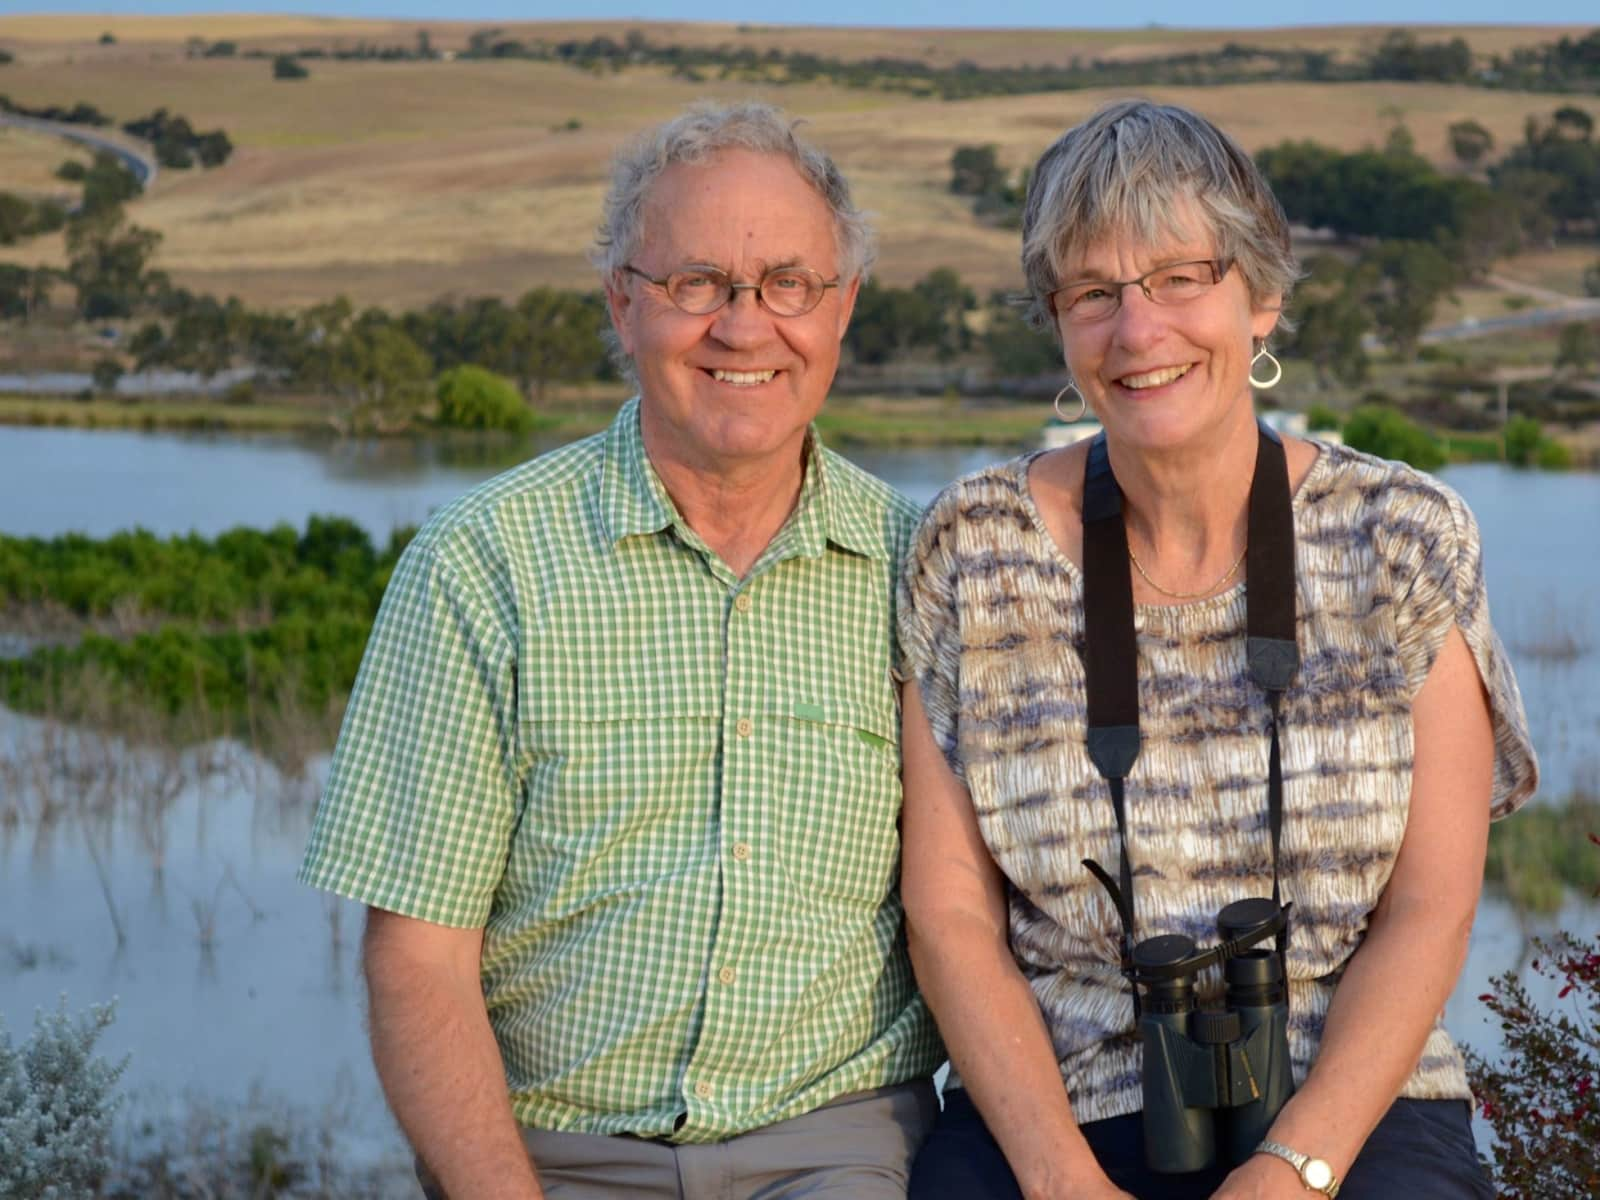 Ray & fenella & Fenella from Tura Beach, New South Wales, Australia